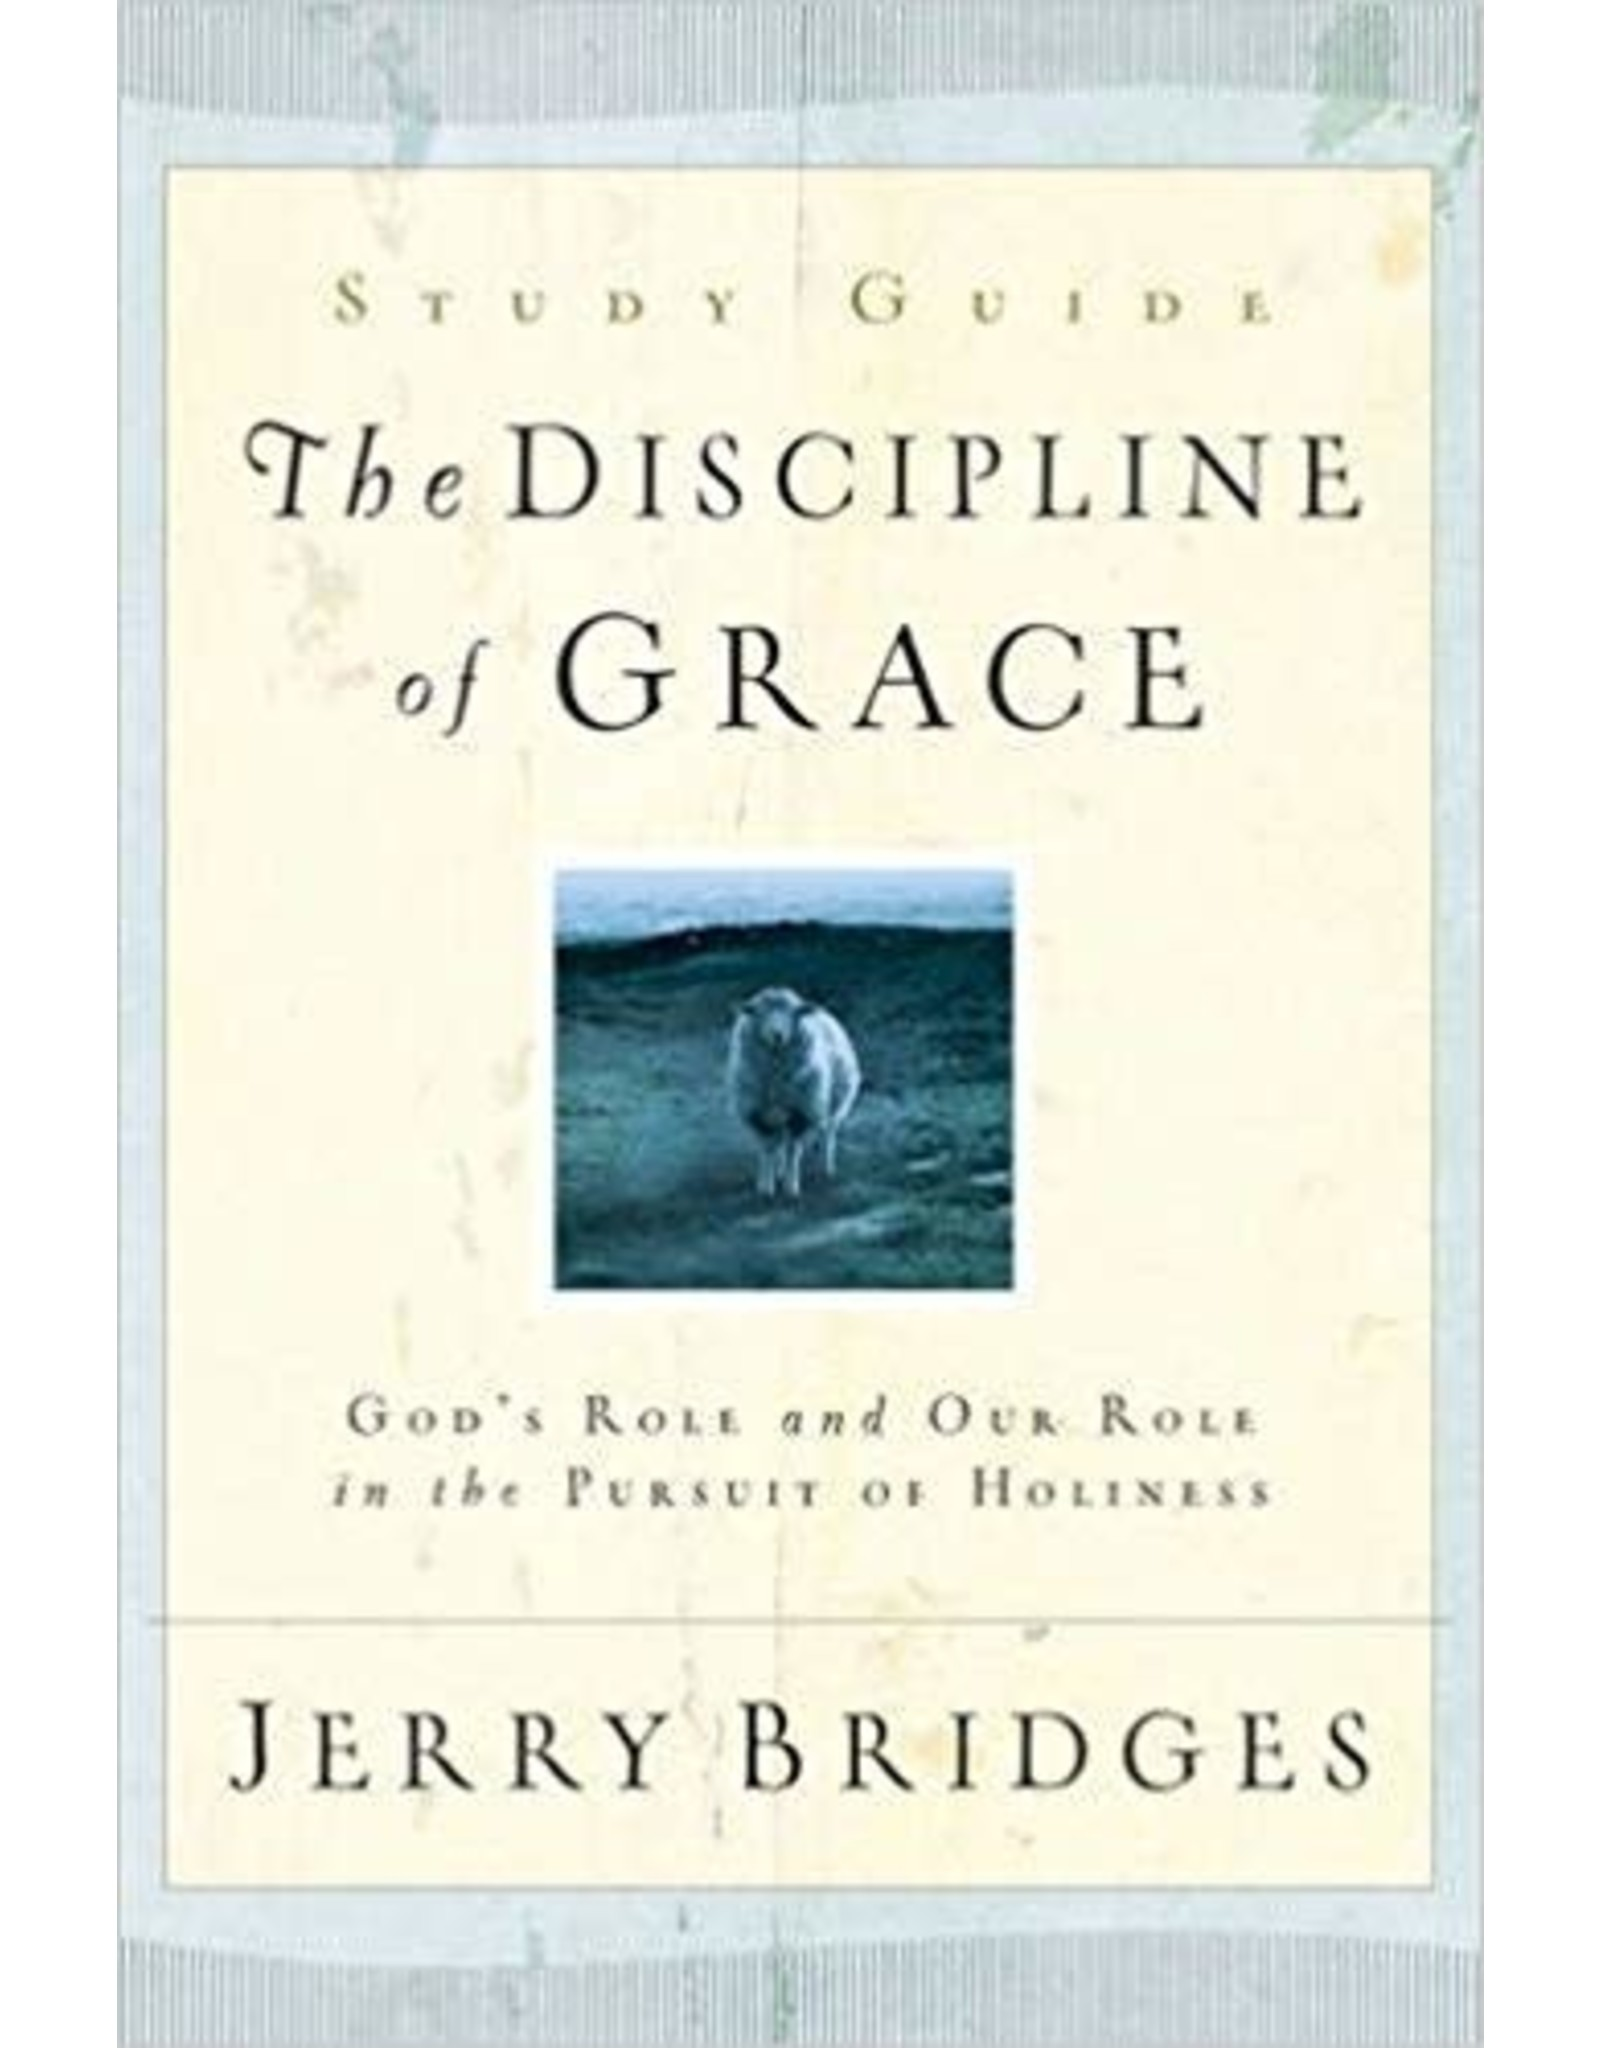 Bridges Discipline of Grace Study Guide